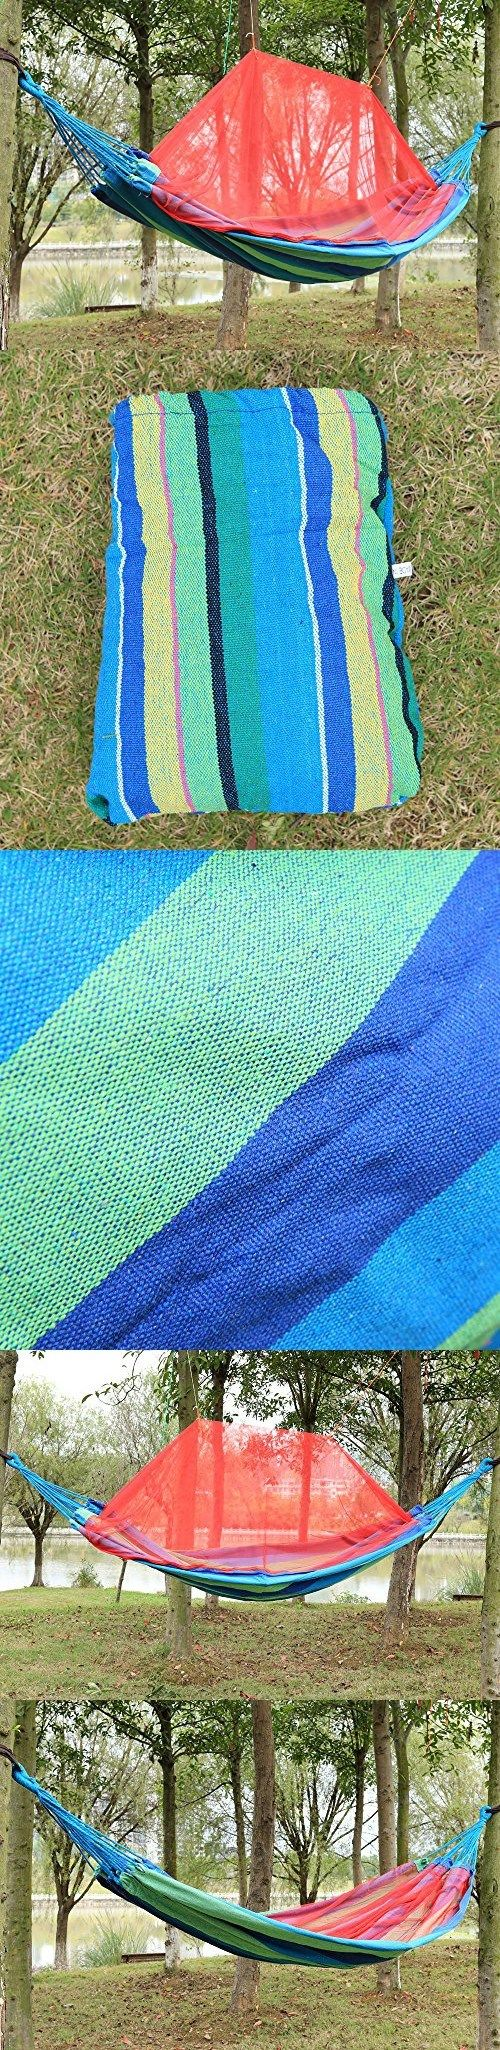 Pparty Supereme Comfort Portable Camping Hammock with Mosquito Net and Carry Pouch -Double 450lbs Max. Relaxing, Comfortable  Fun - Soft Woven Cotton Bed (Lake Blue Stripes)